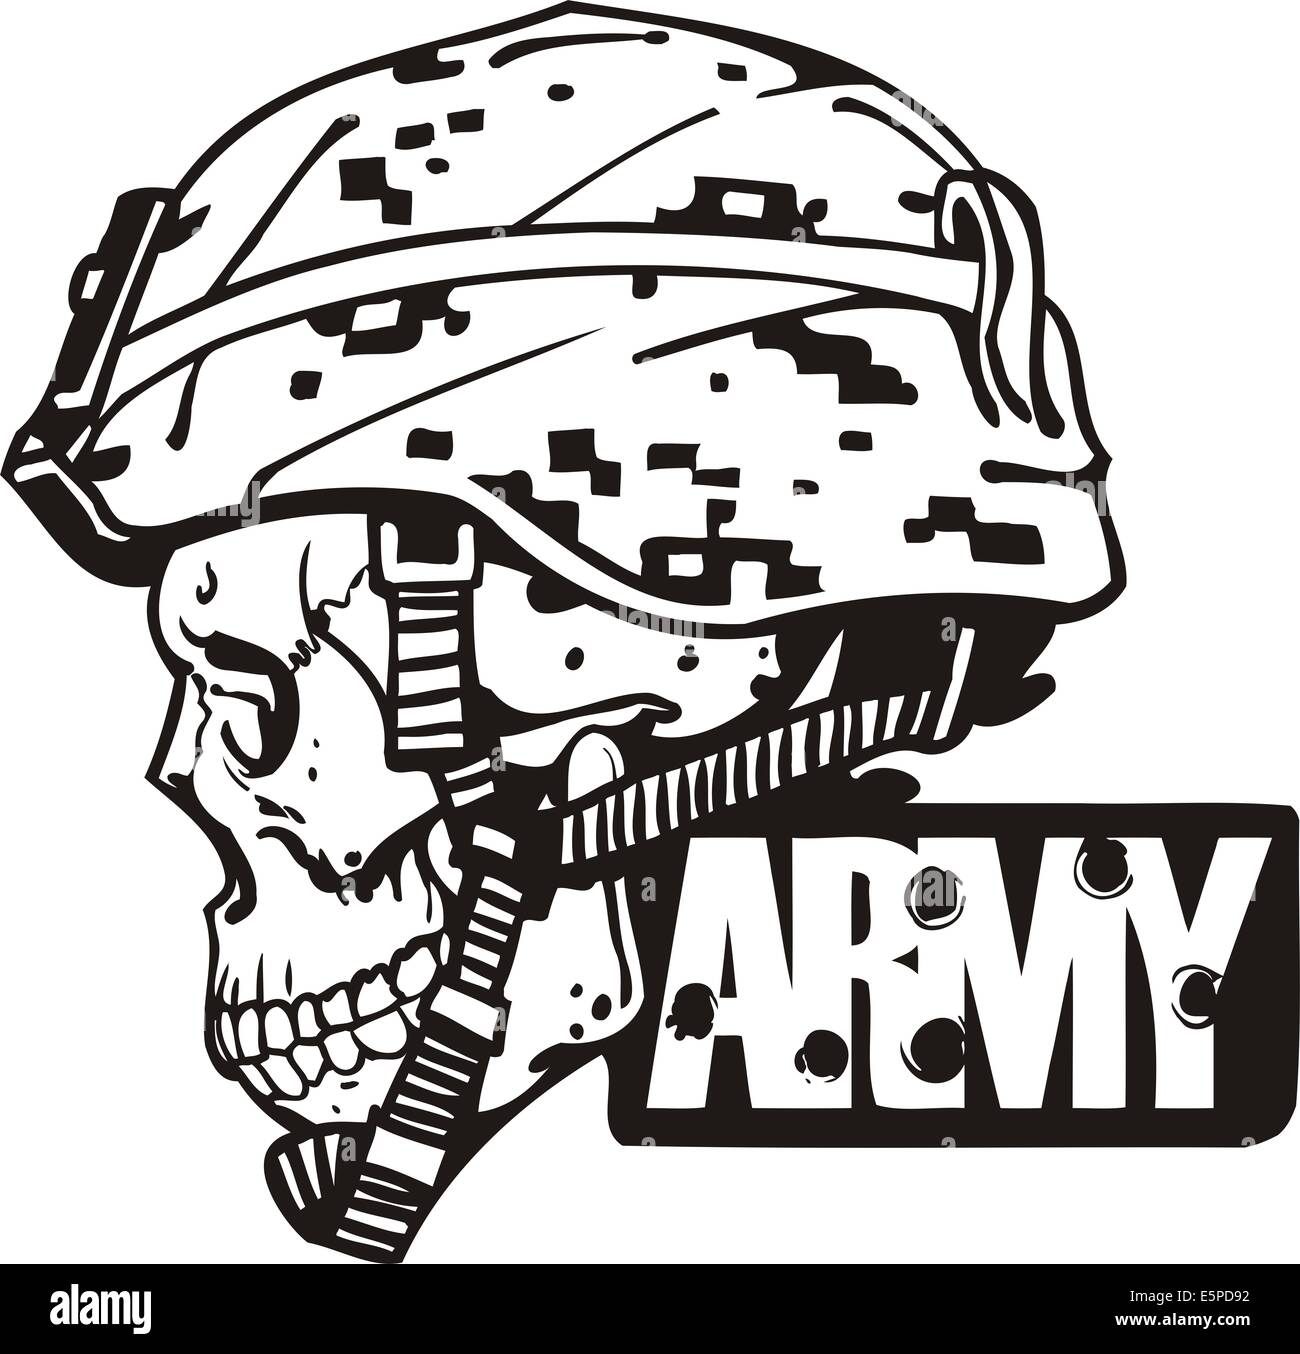 Us Army Military Design Vector Illustration Stock Photo